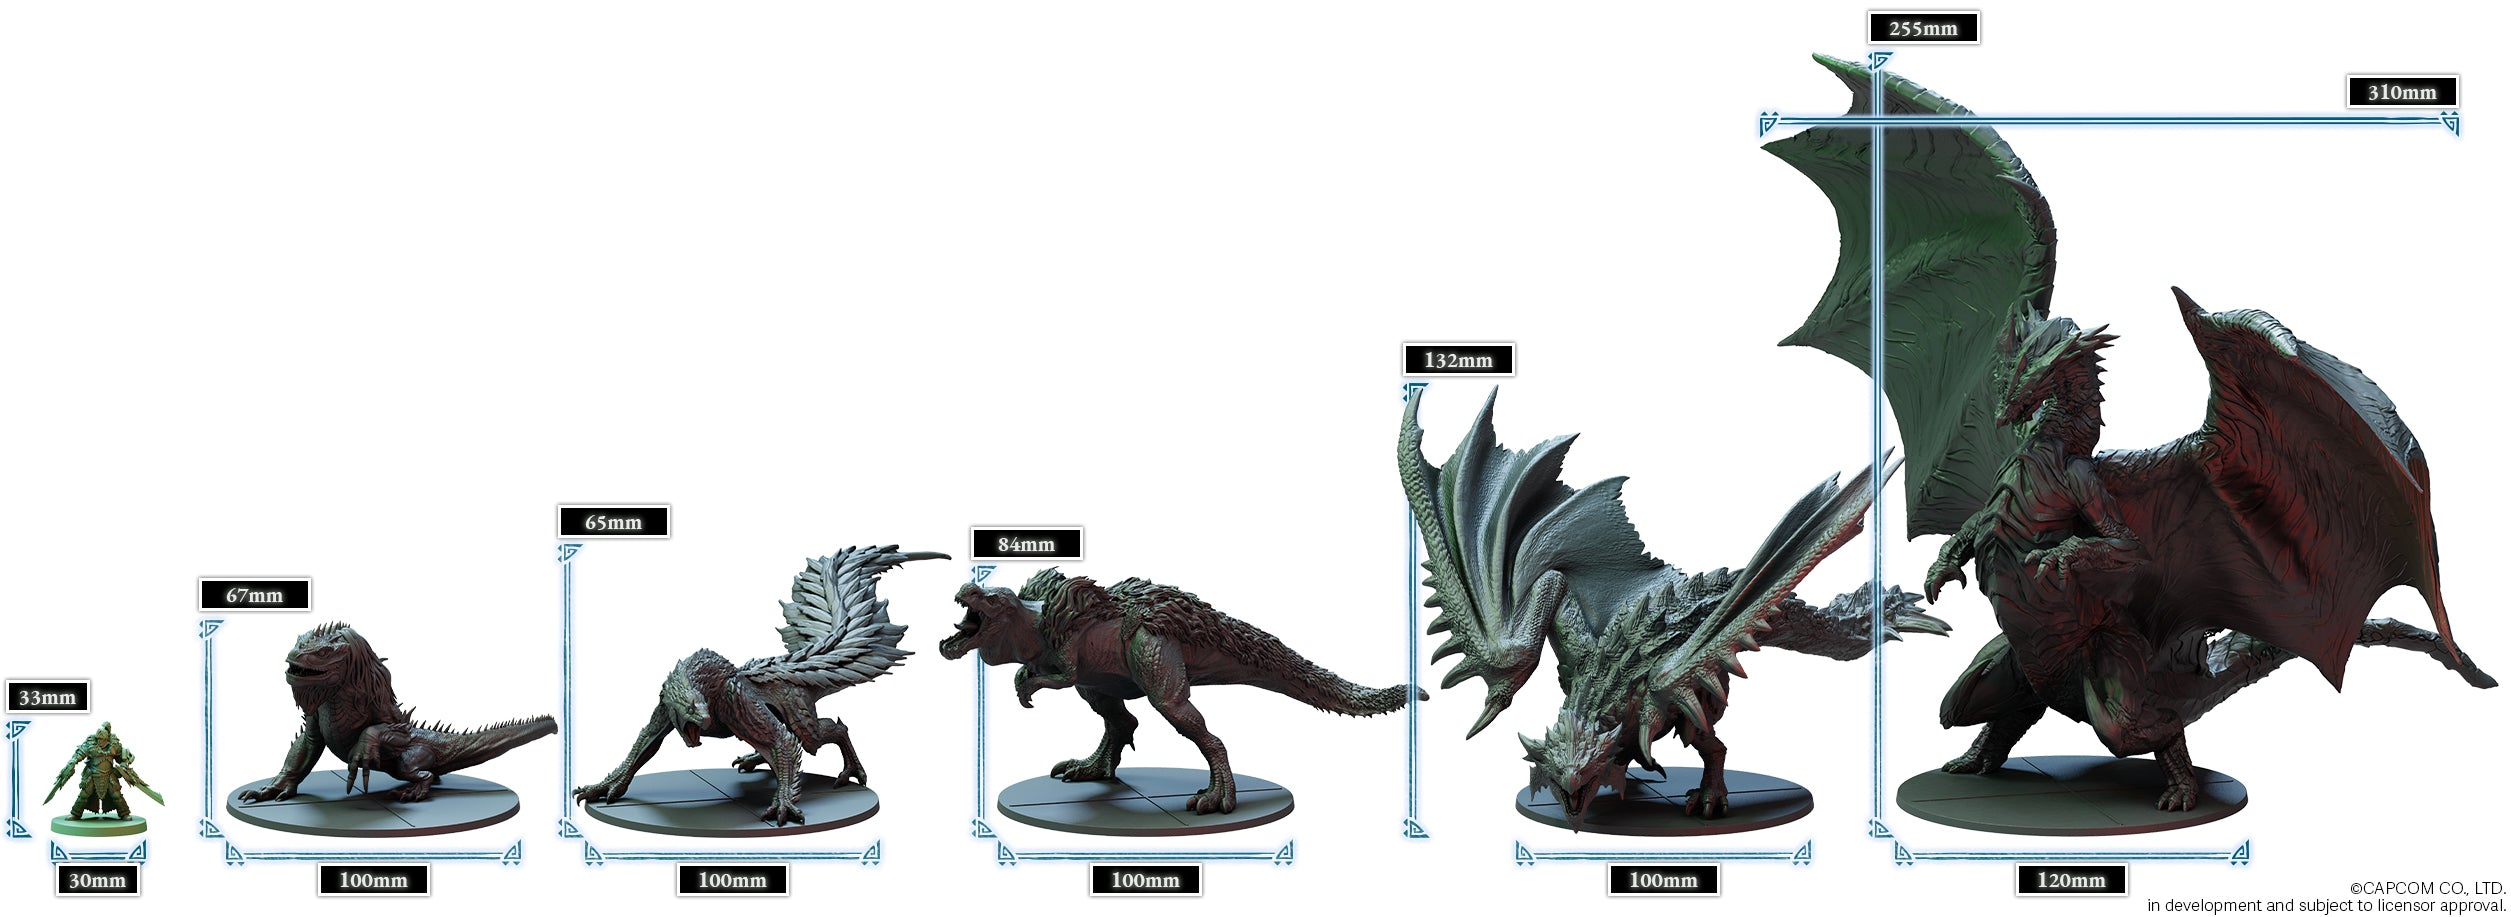 MHW-Board-Game-Monster-Scale